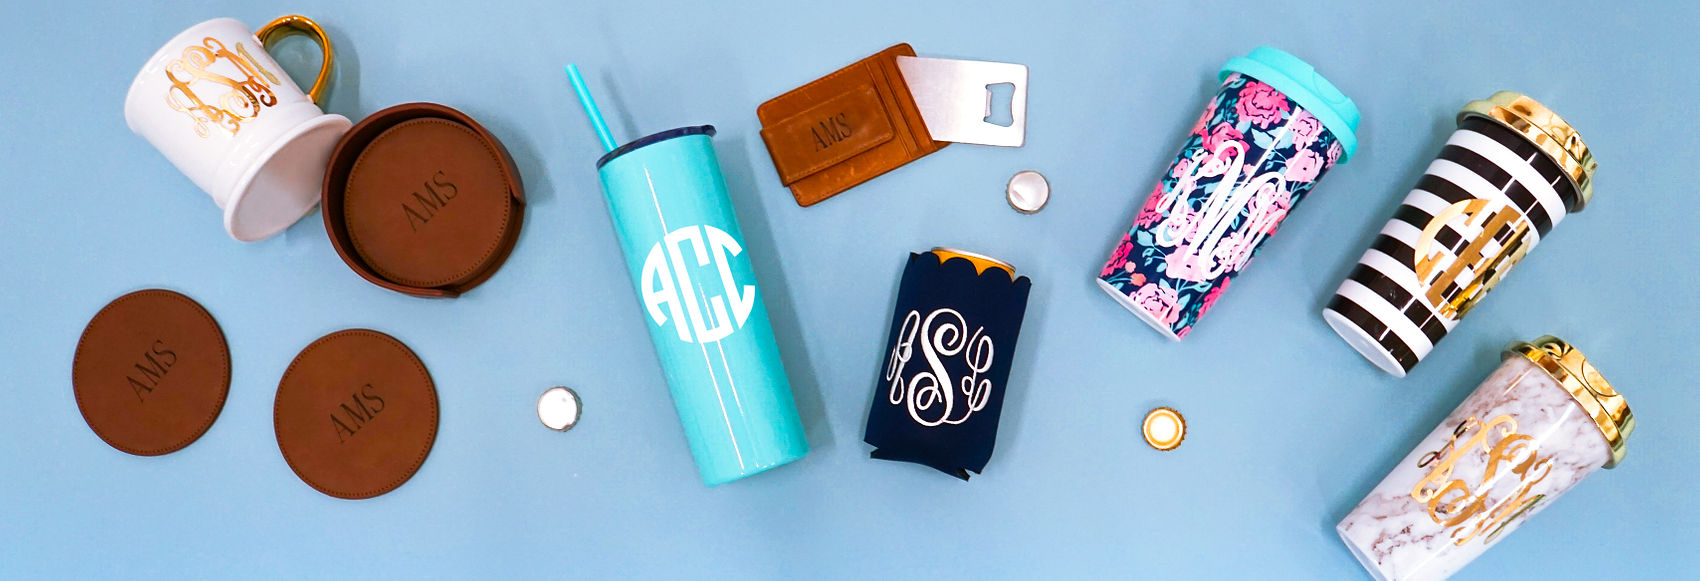 personalized drinkware, personalized coasters, monogrammed coffee mugs